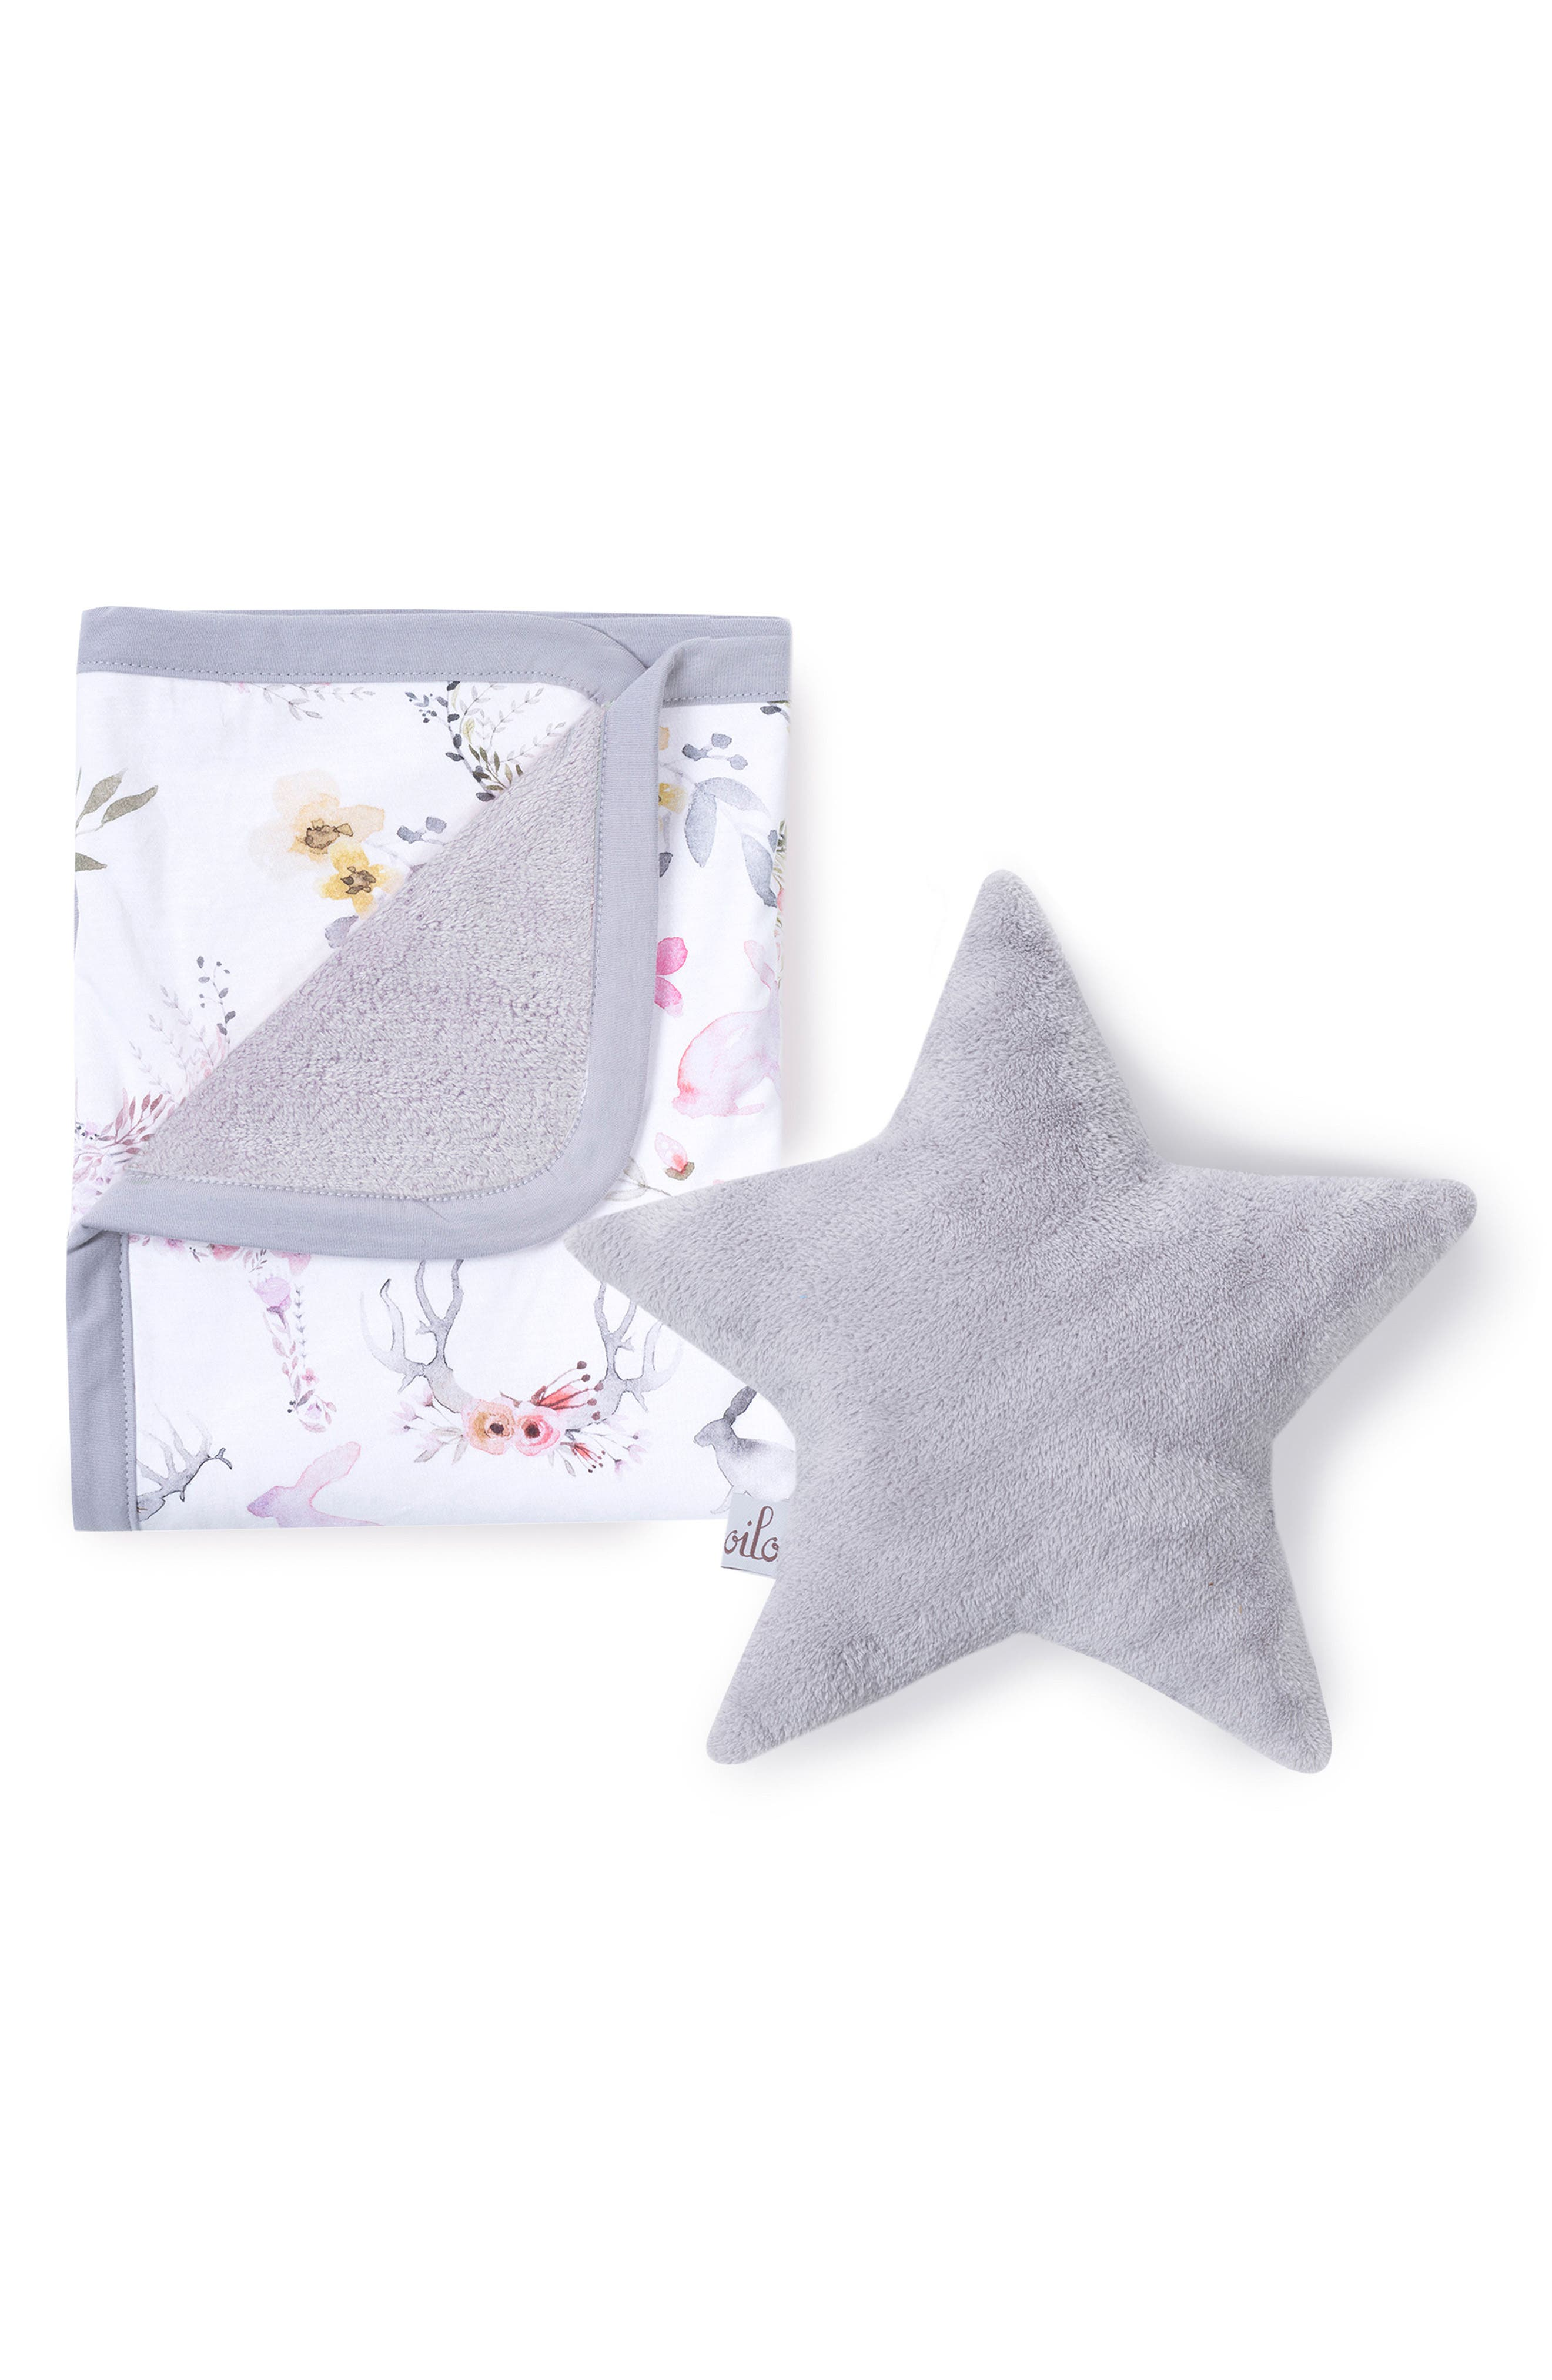 Alternate Image 1 Selected - Oilo Fawn Cuddle Blanket & Star Pillow Set